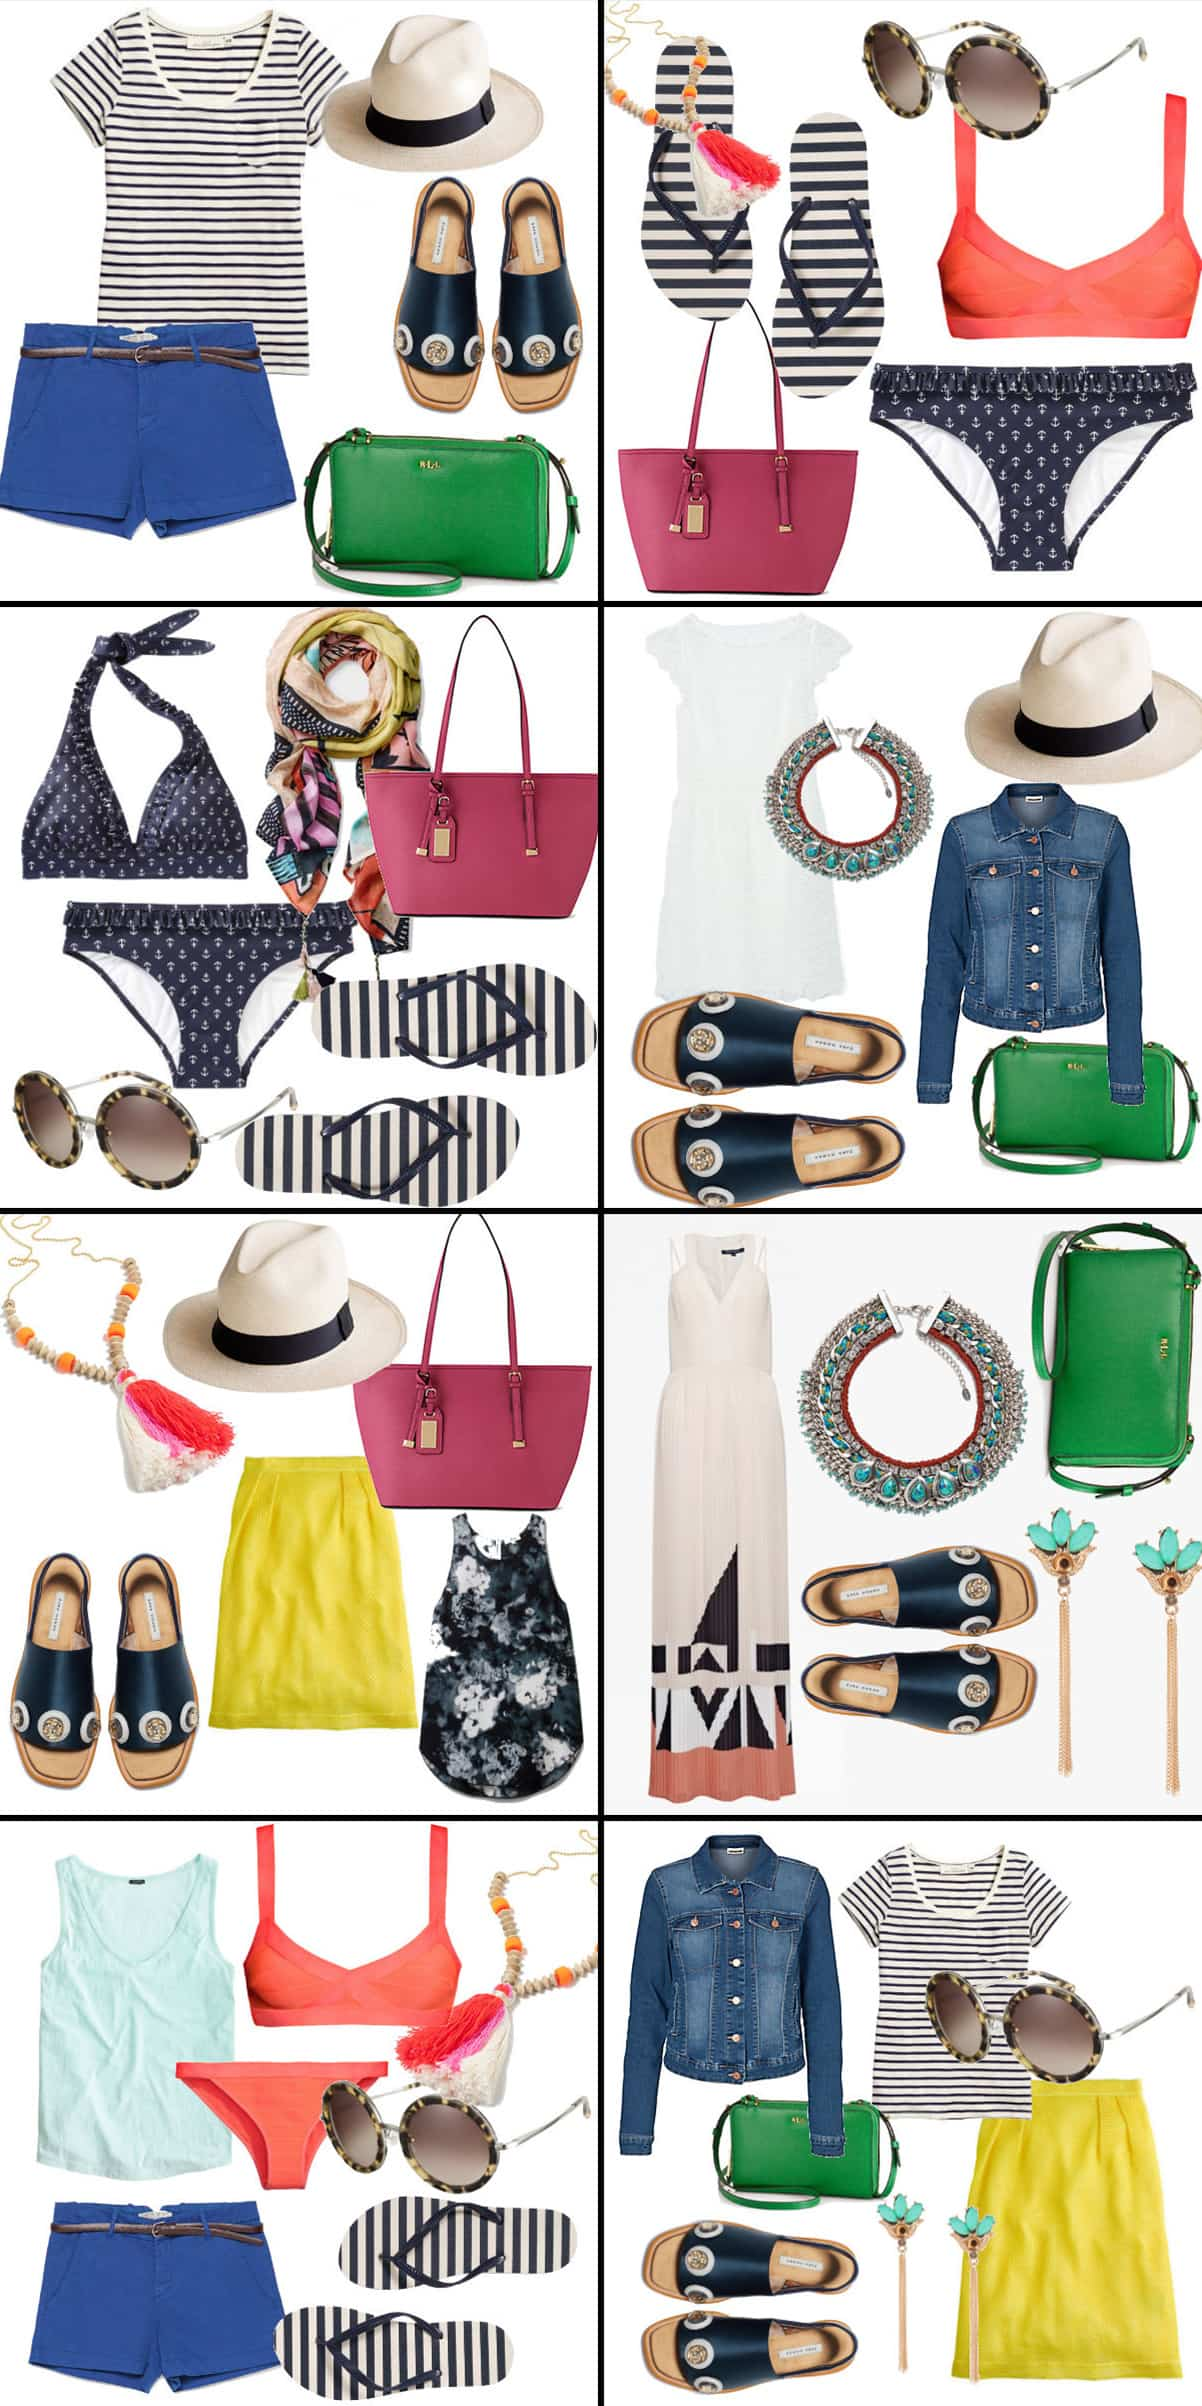 8 ways to style your clothes for a beach vacation